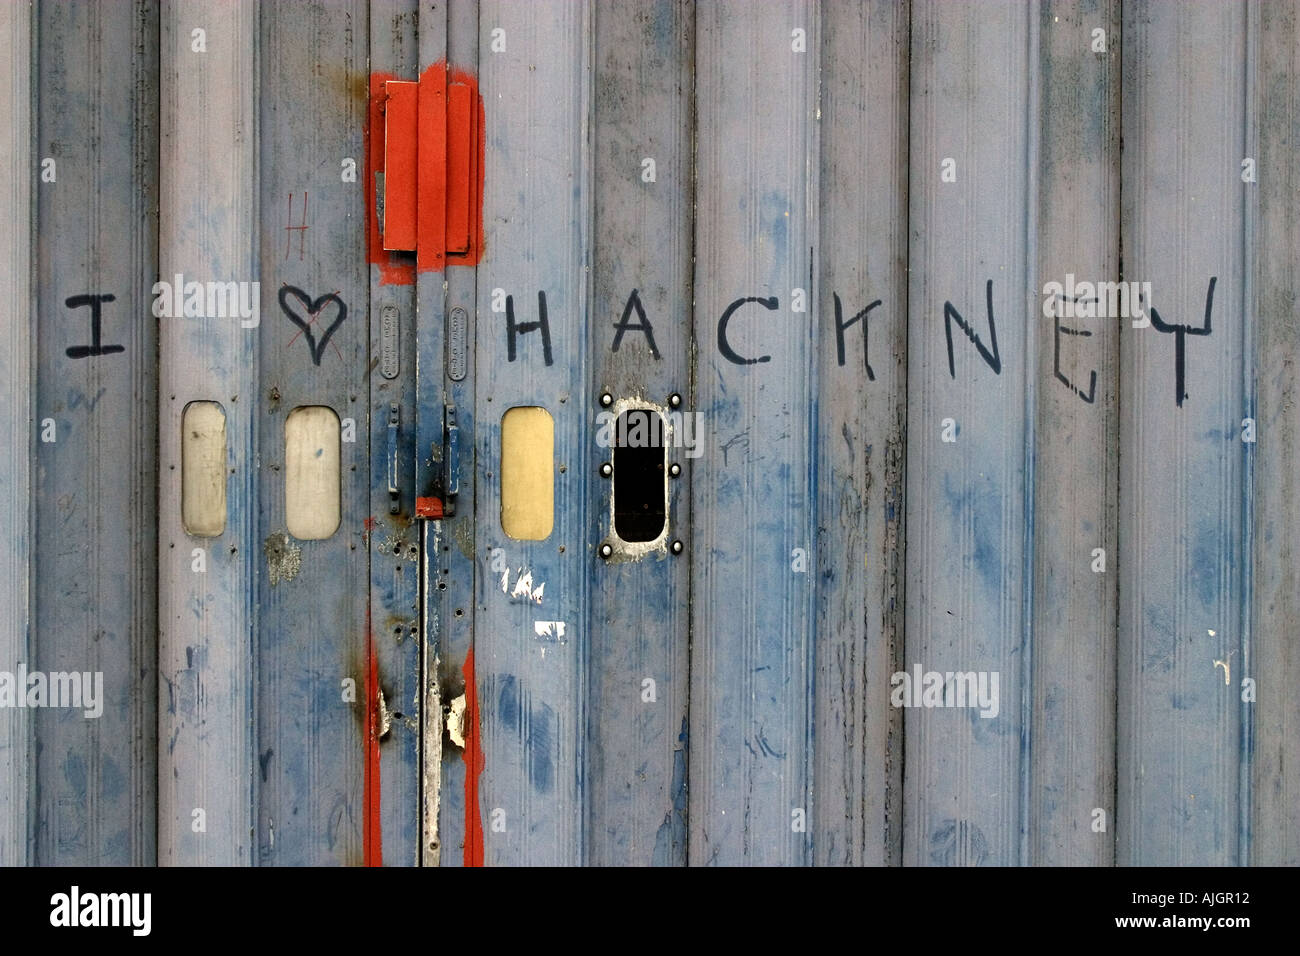 Graffiti on a gate in the London Borough of Hackney, England. - Stock Image